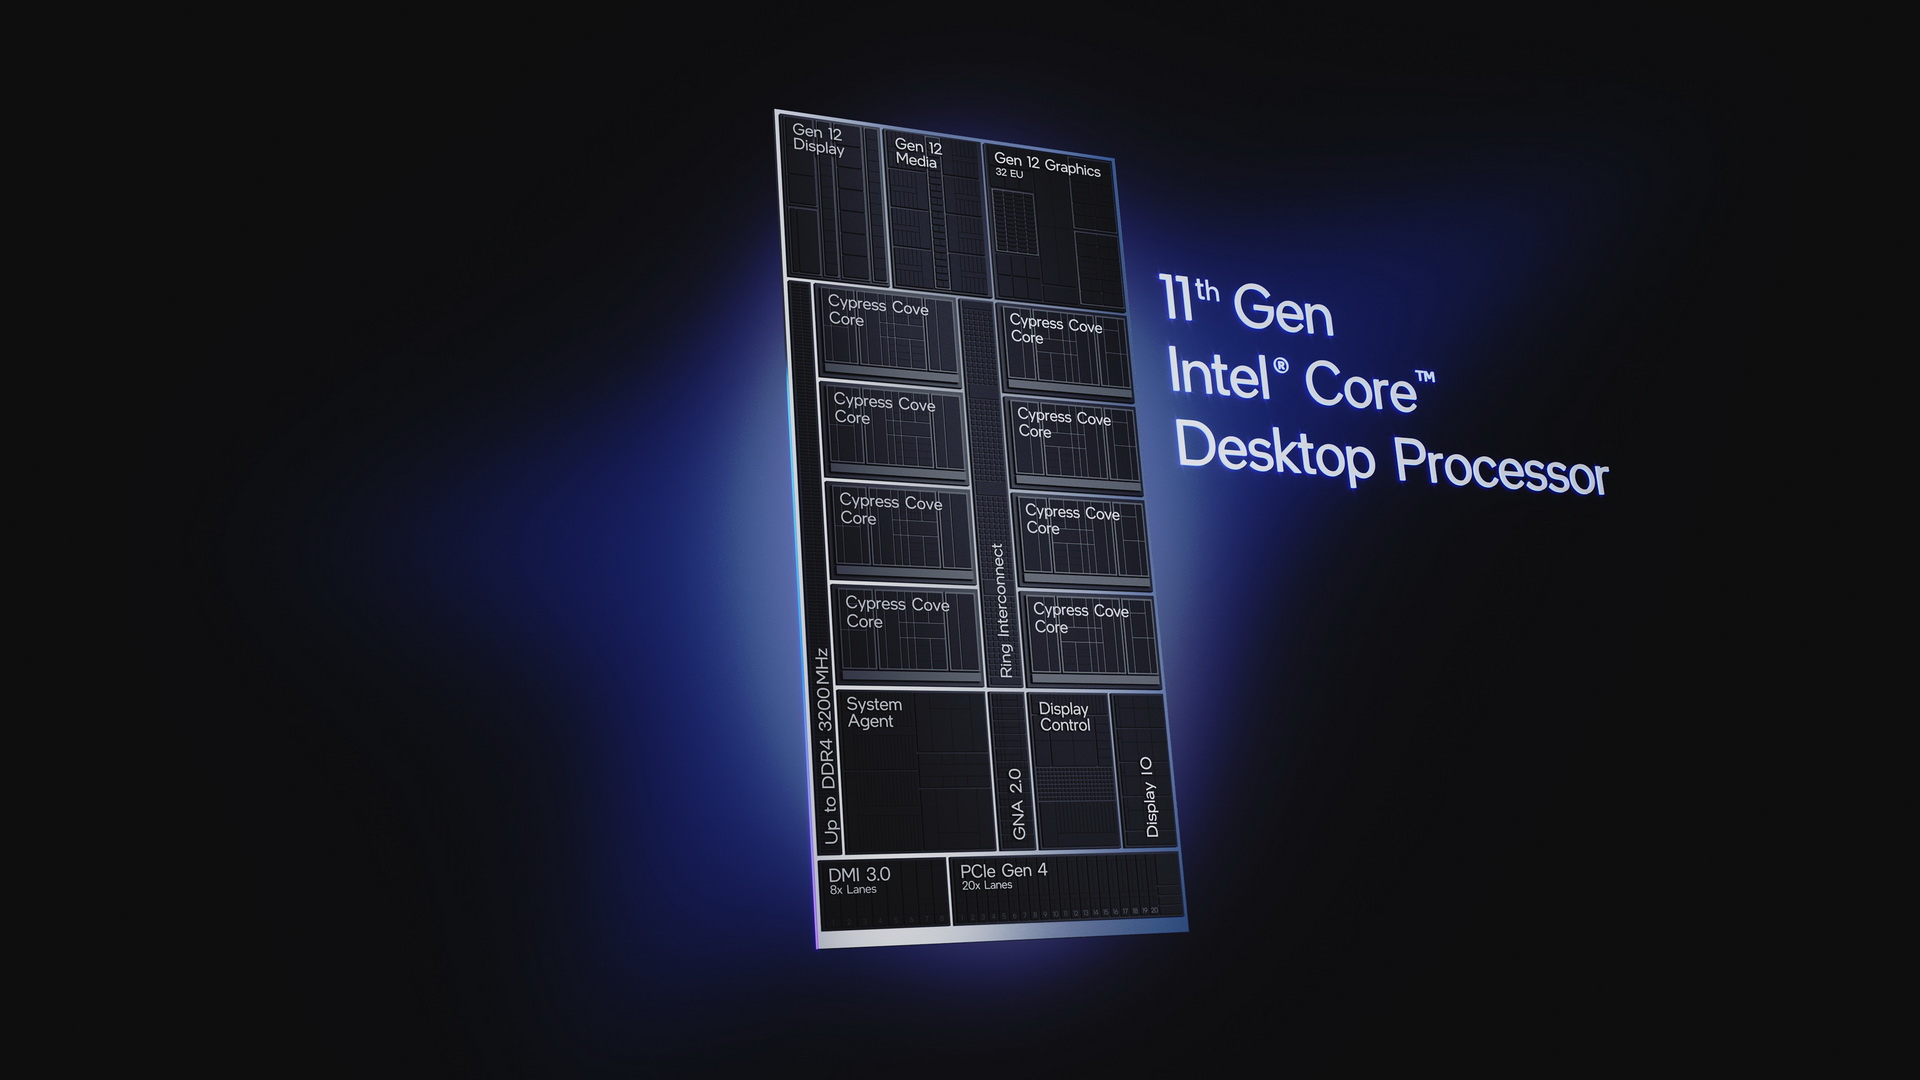 11th Gen Intel Core desktop processors engineered on the new Cypress Cove architecture are designed to transform hardware and software efficiency and increase raw gaming performance. They were introduced on March 16, 2021. (Credit: Intel Corporation)